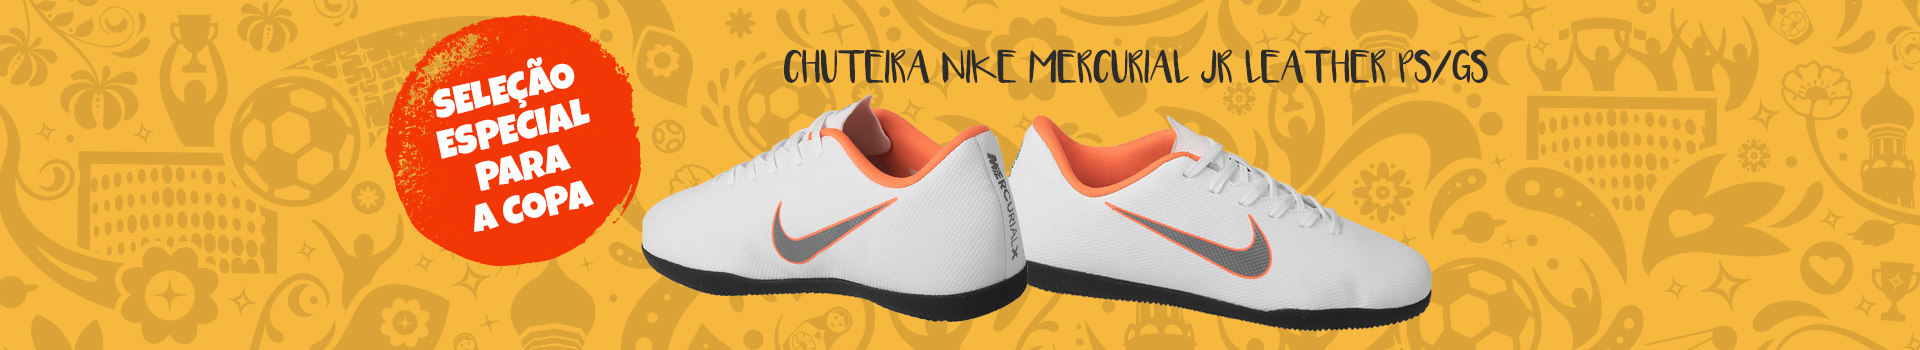 TV1-Chuteira_Nike_Mercurial